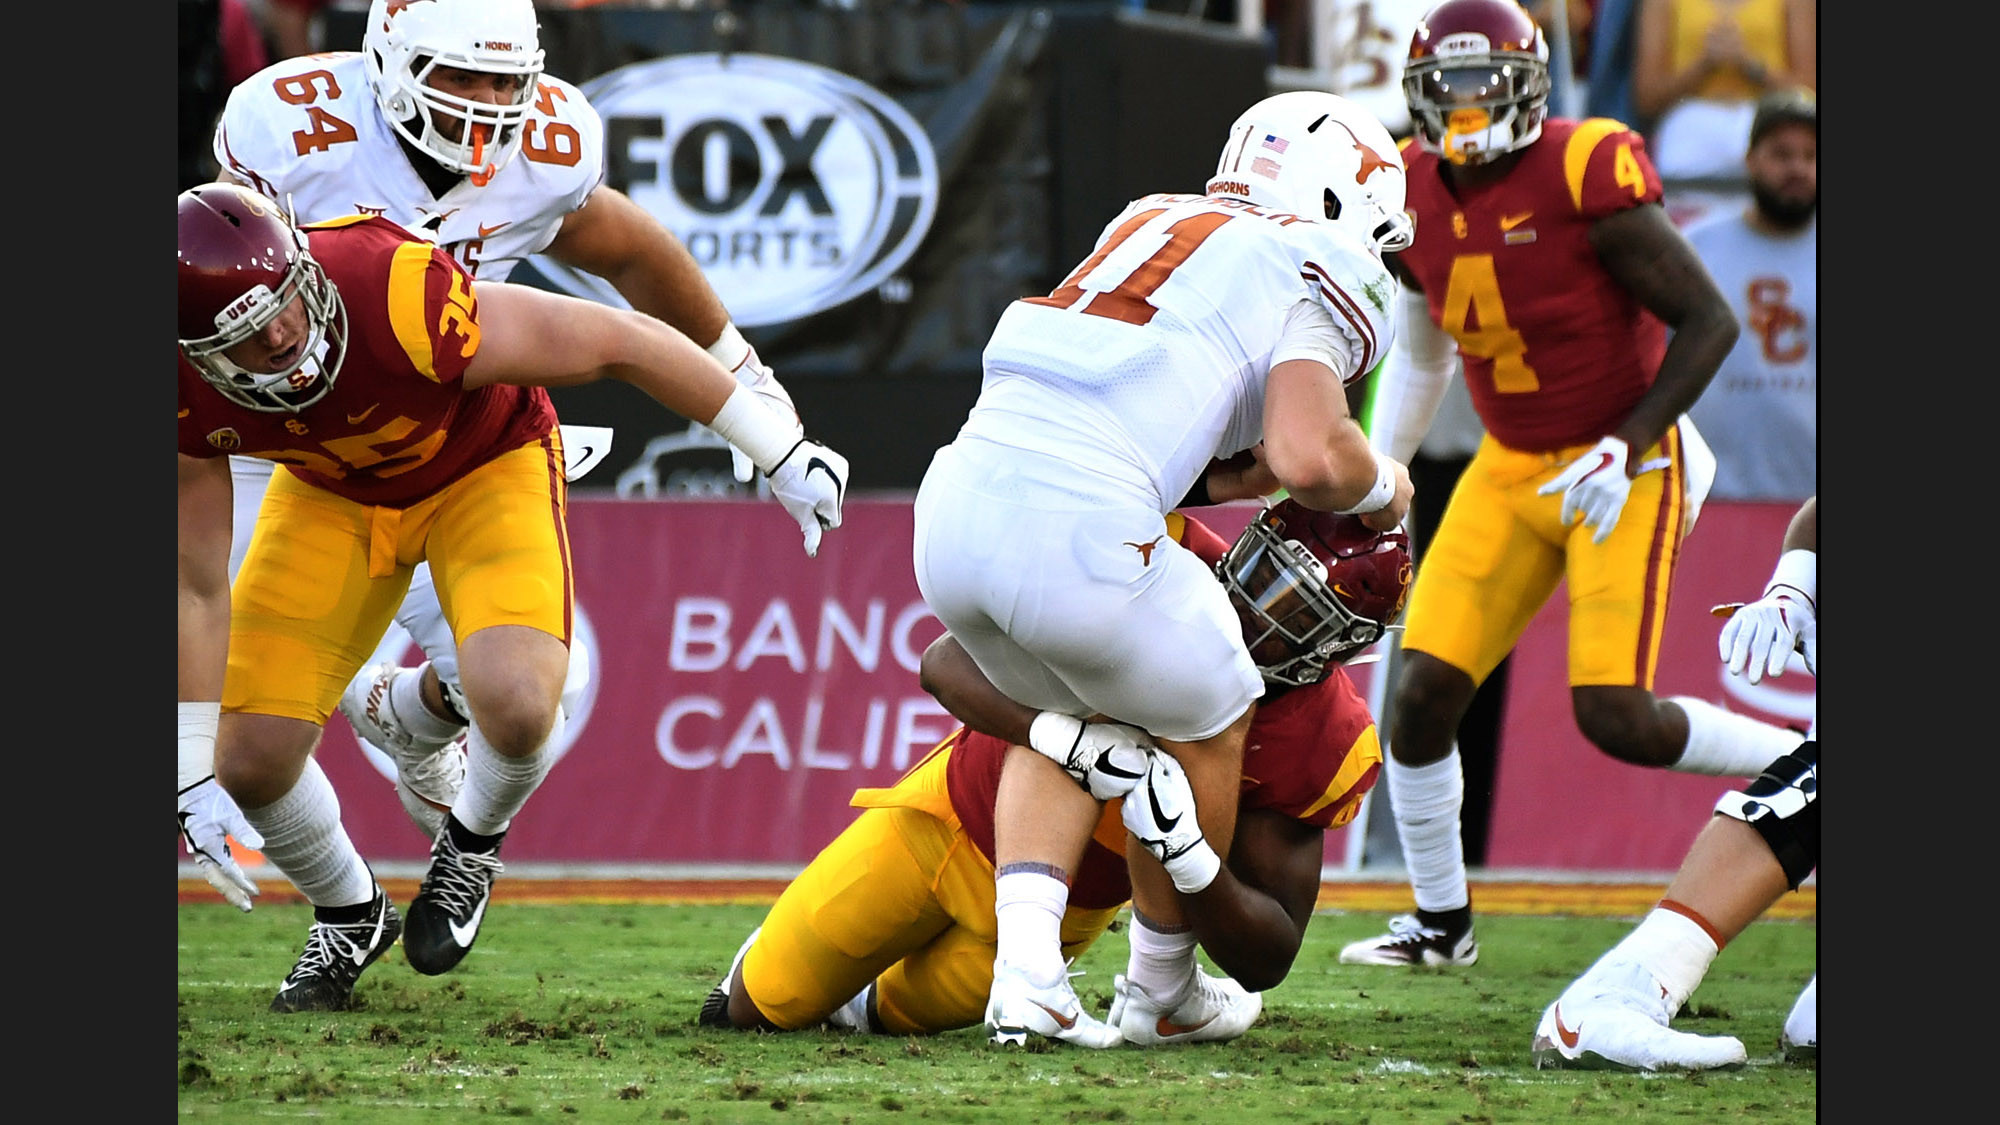 USC linebacker Uchenna Nwosu stops Texas quarterback Sam Ehlinger on fourth down during the first quarter of a game at the Coliseum. (Wally Skalij / Los Angeles Times)